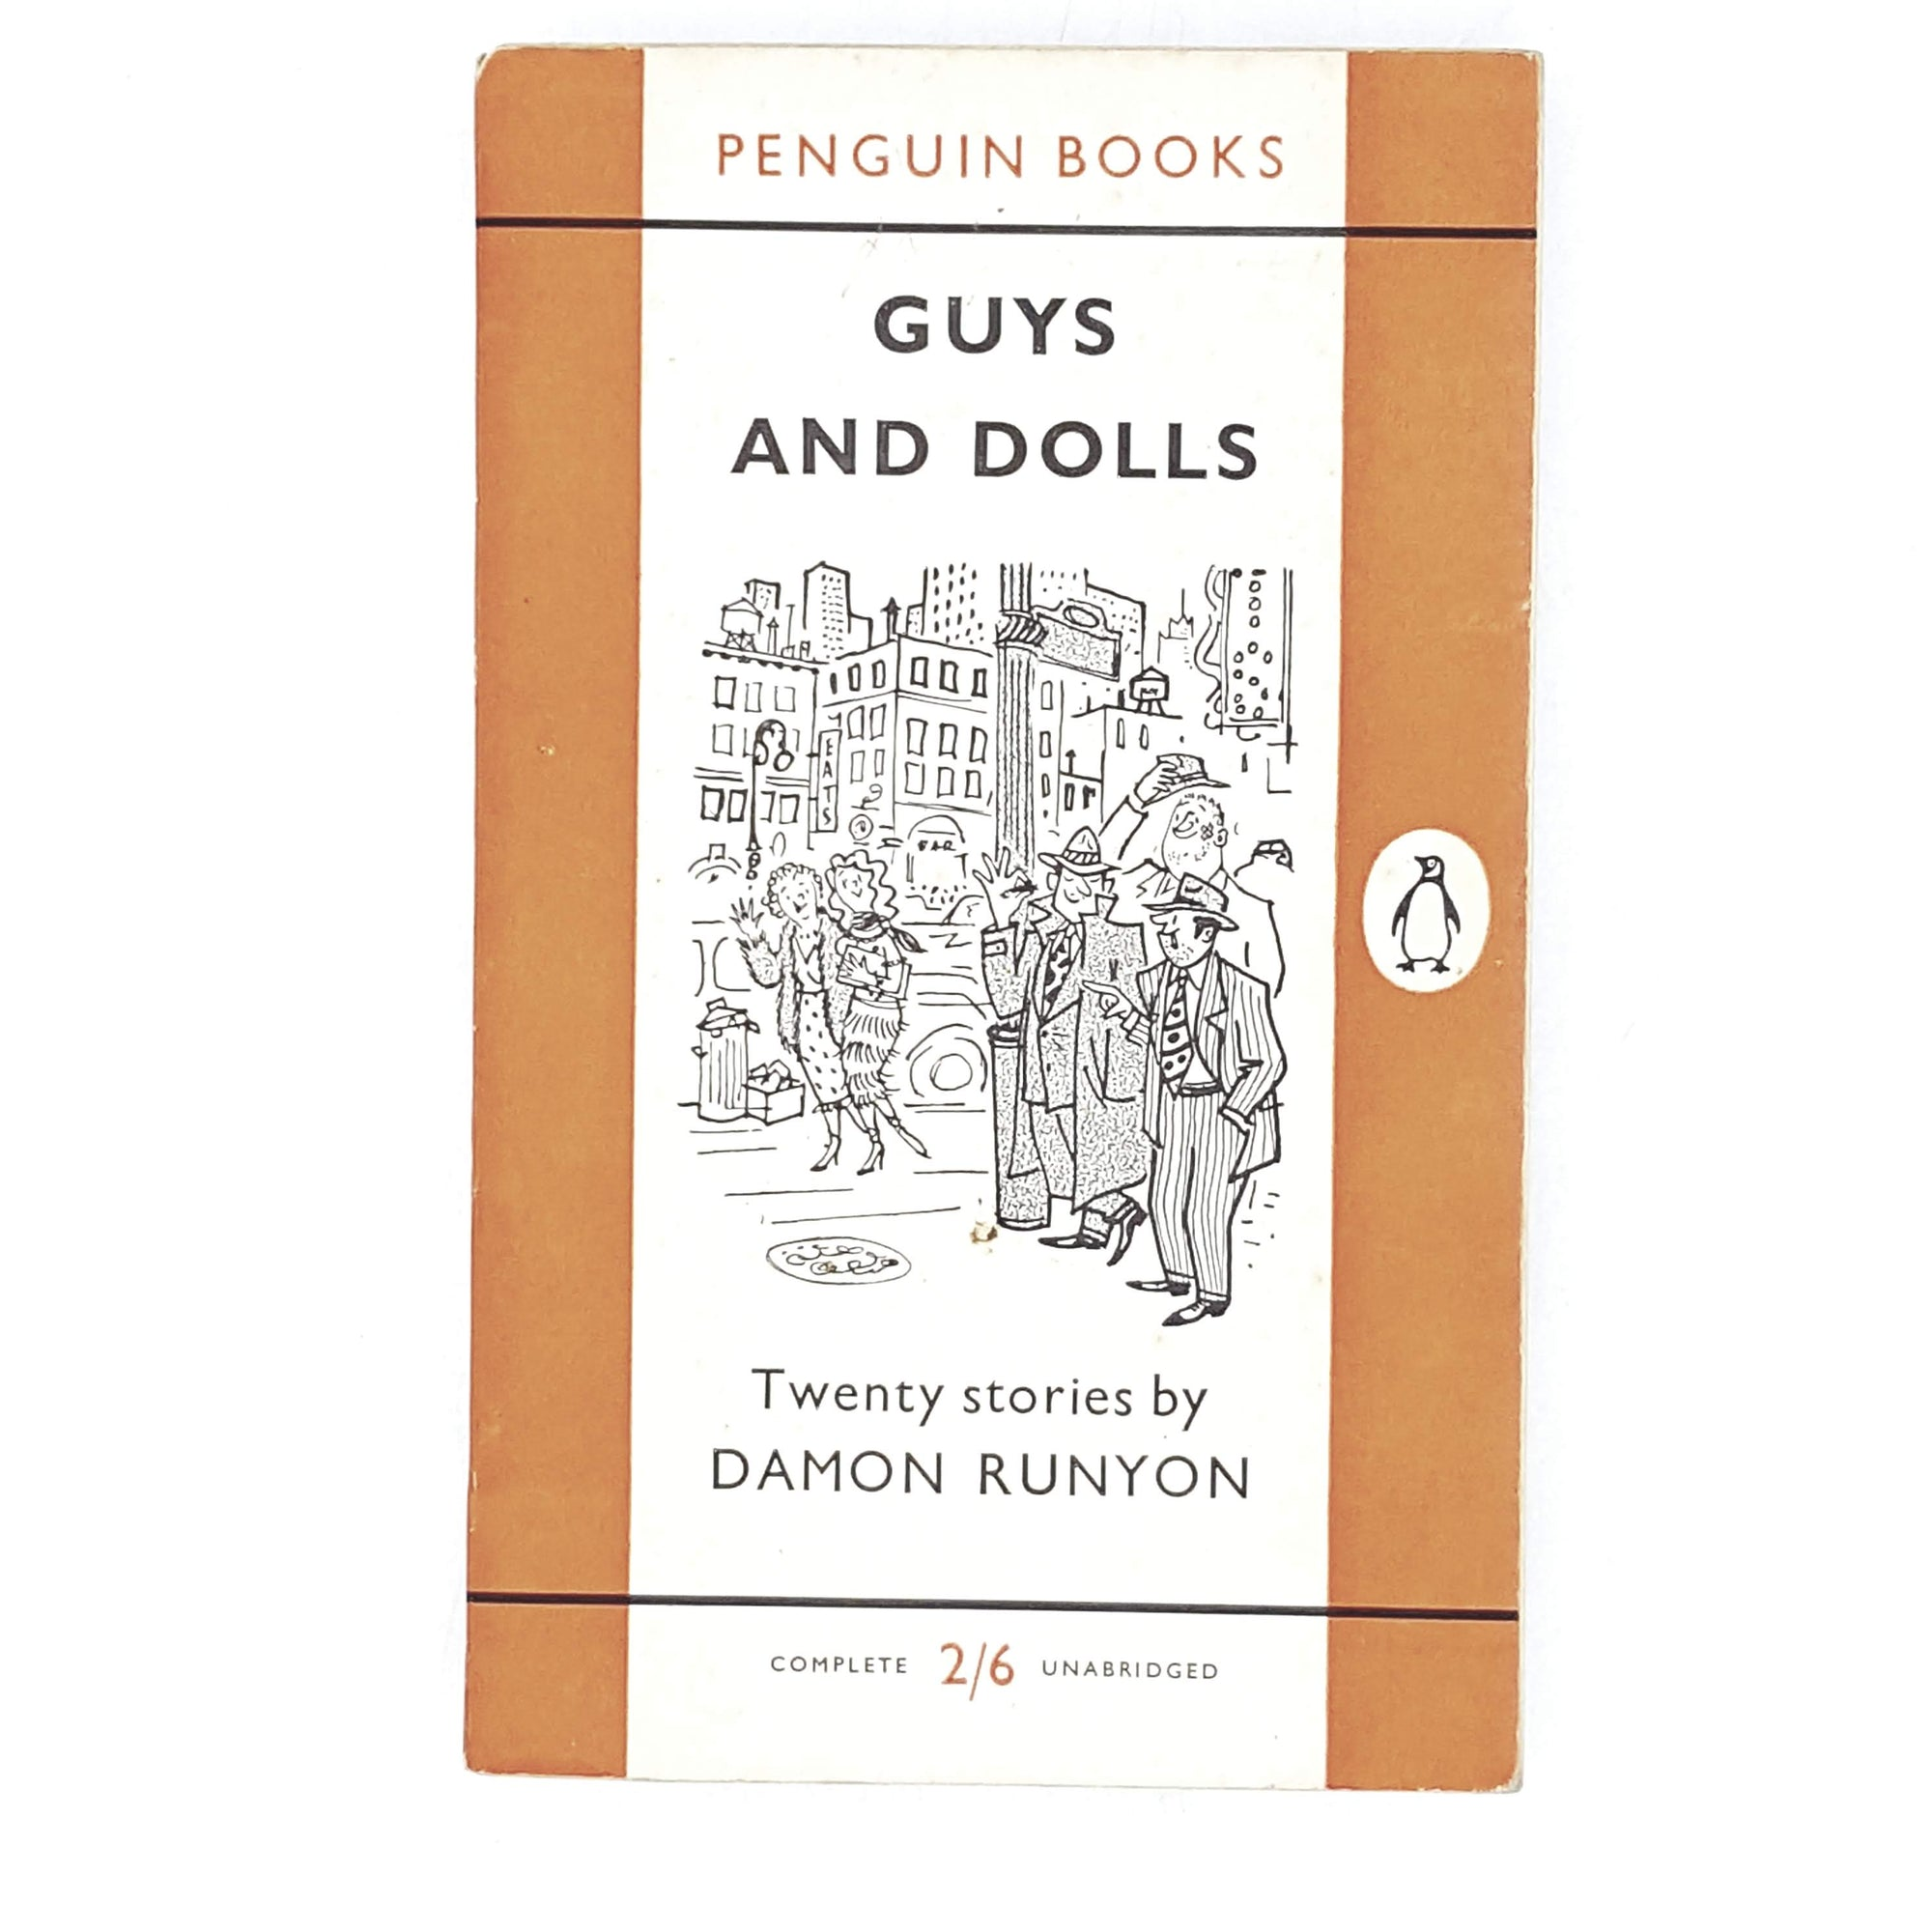 Vintage Penguin Guys and Dolls by Damon Runyon 1956